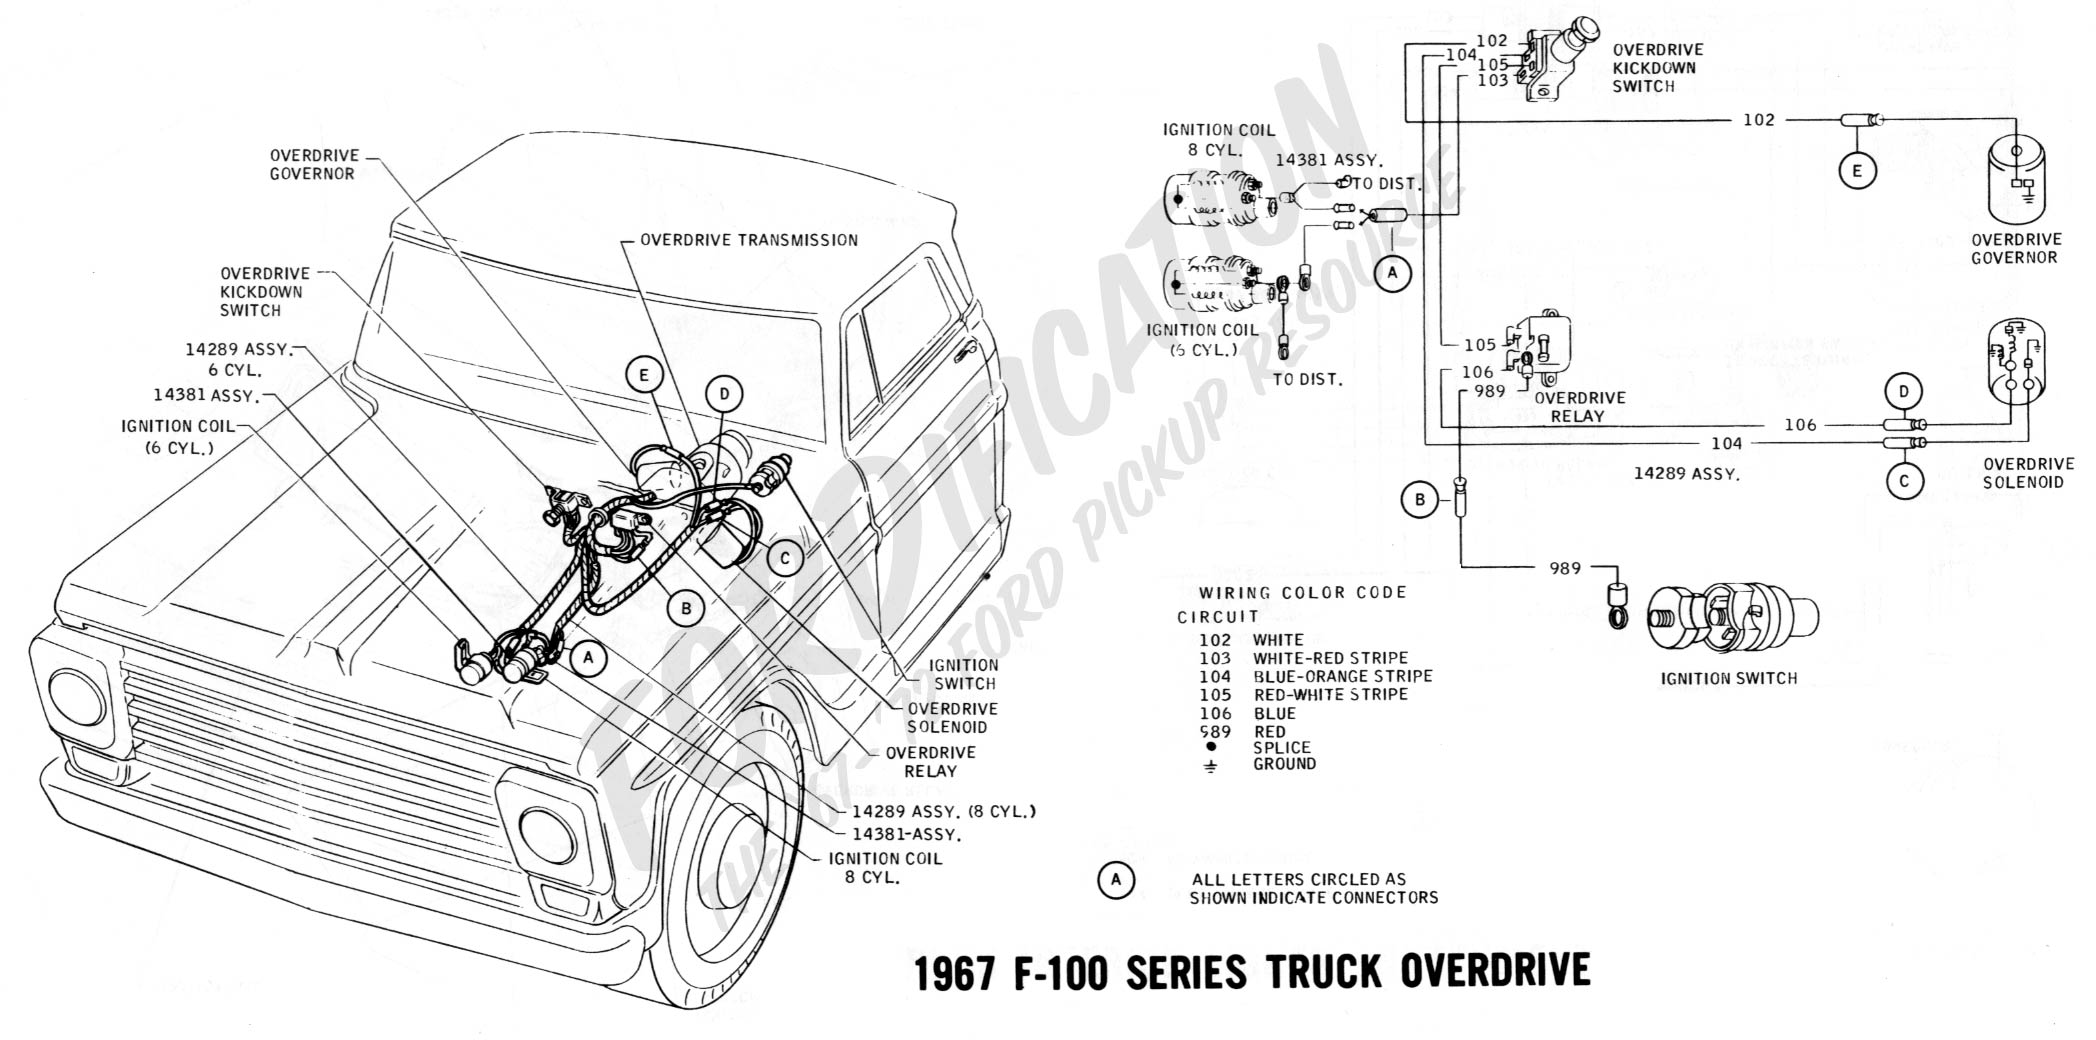 wiring 1967overdrive2 ford truck technical drawings and schematics section h wiring 1966 ford truck wiring diagram at nearapp.co